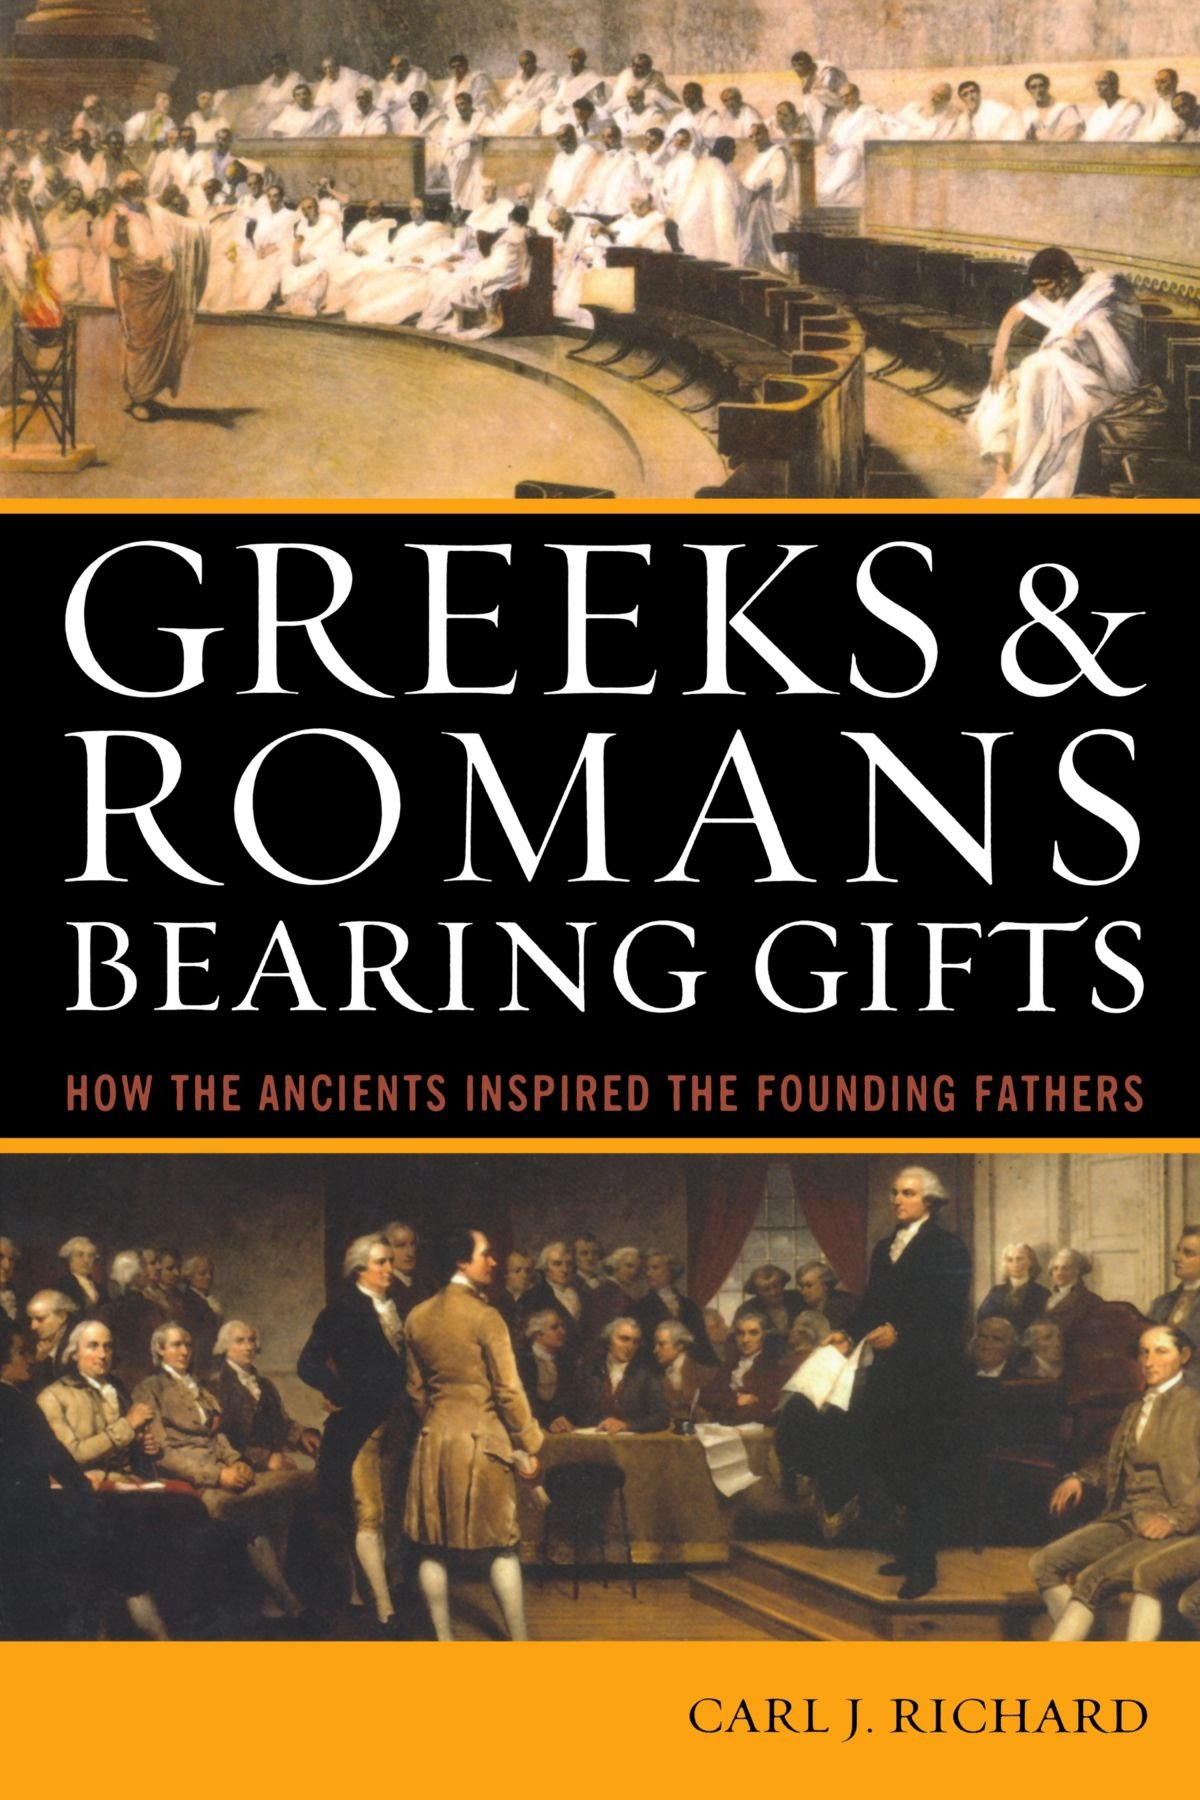 greeks-romans-bearing-gifts-how-the-ancients-inspired-the-founding-fathers